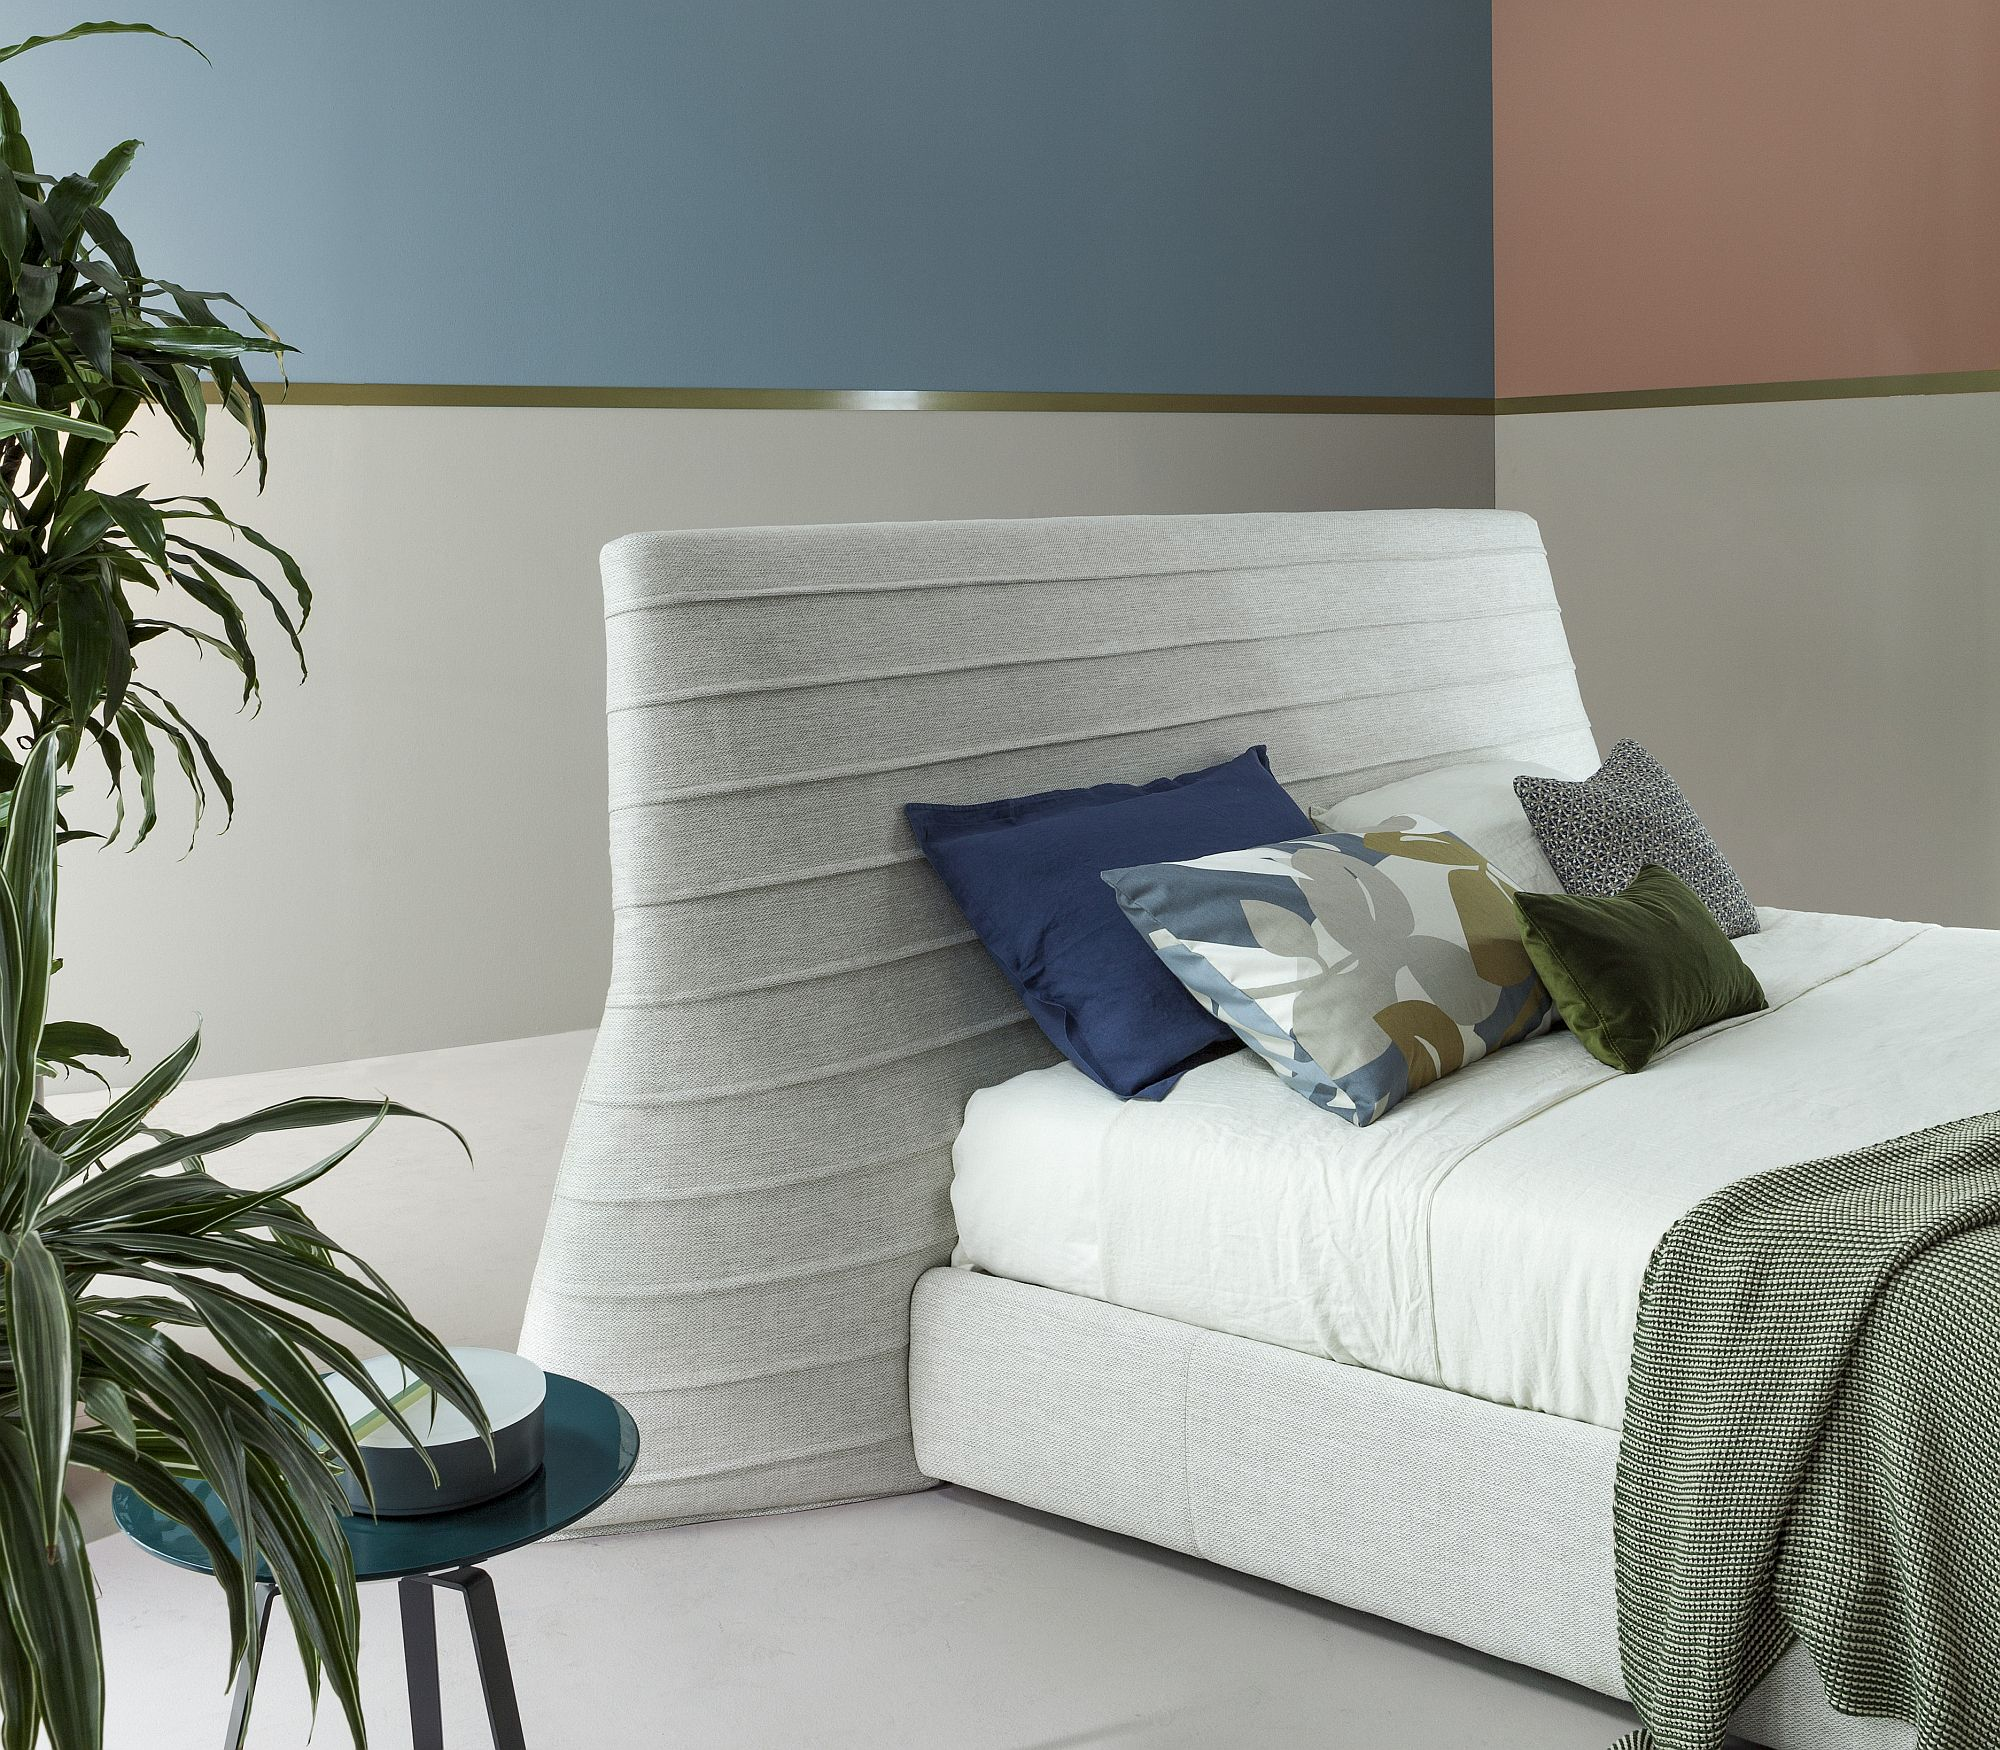 Fabric-covered-headboard-of-the-bed-gives-it-a-unique-look